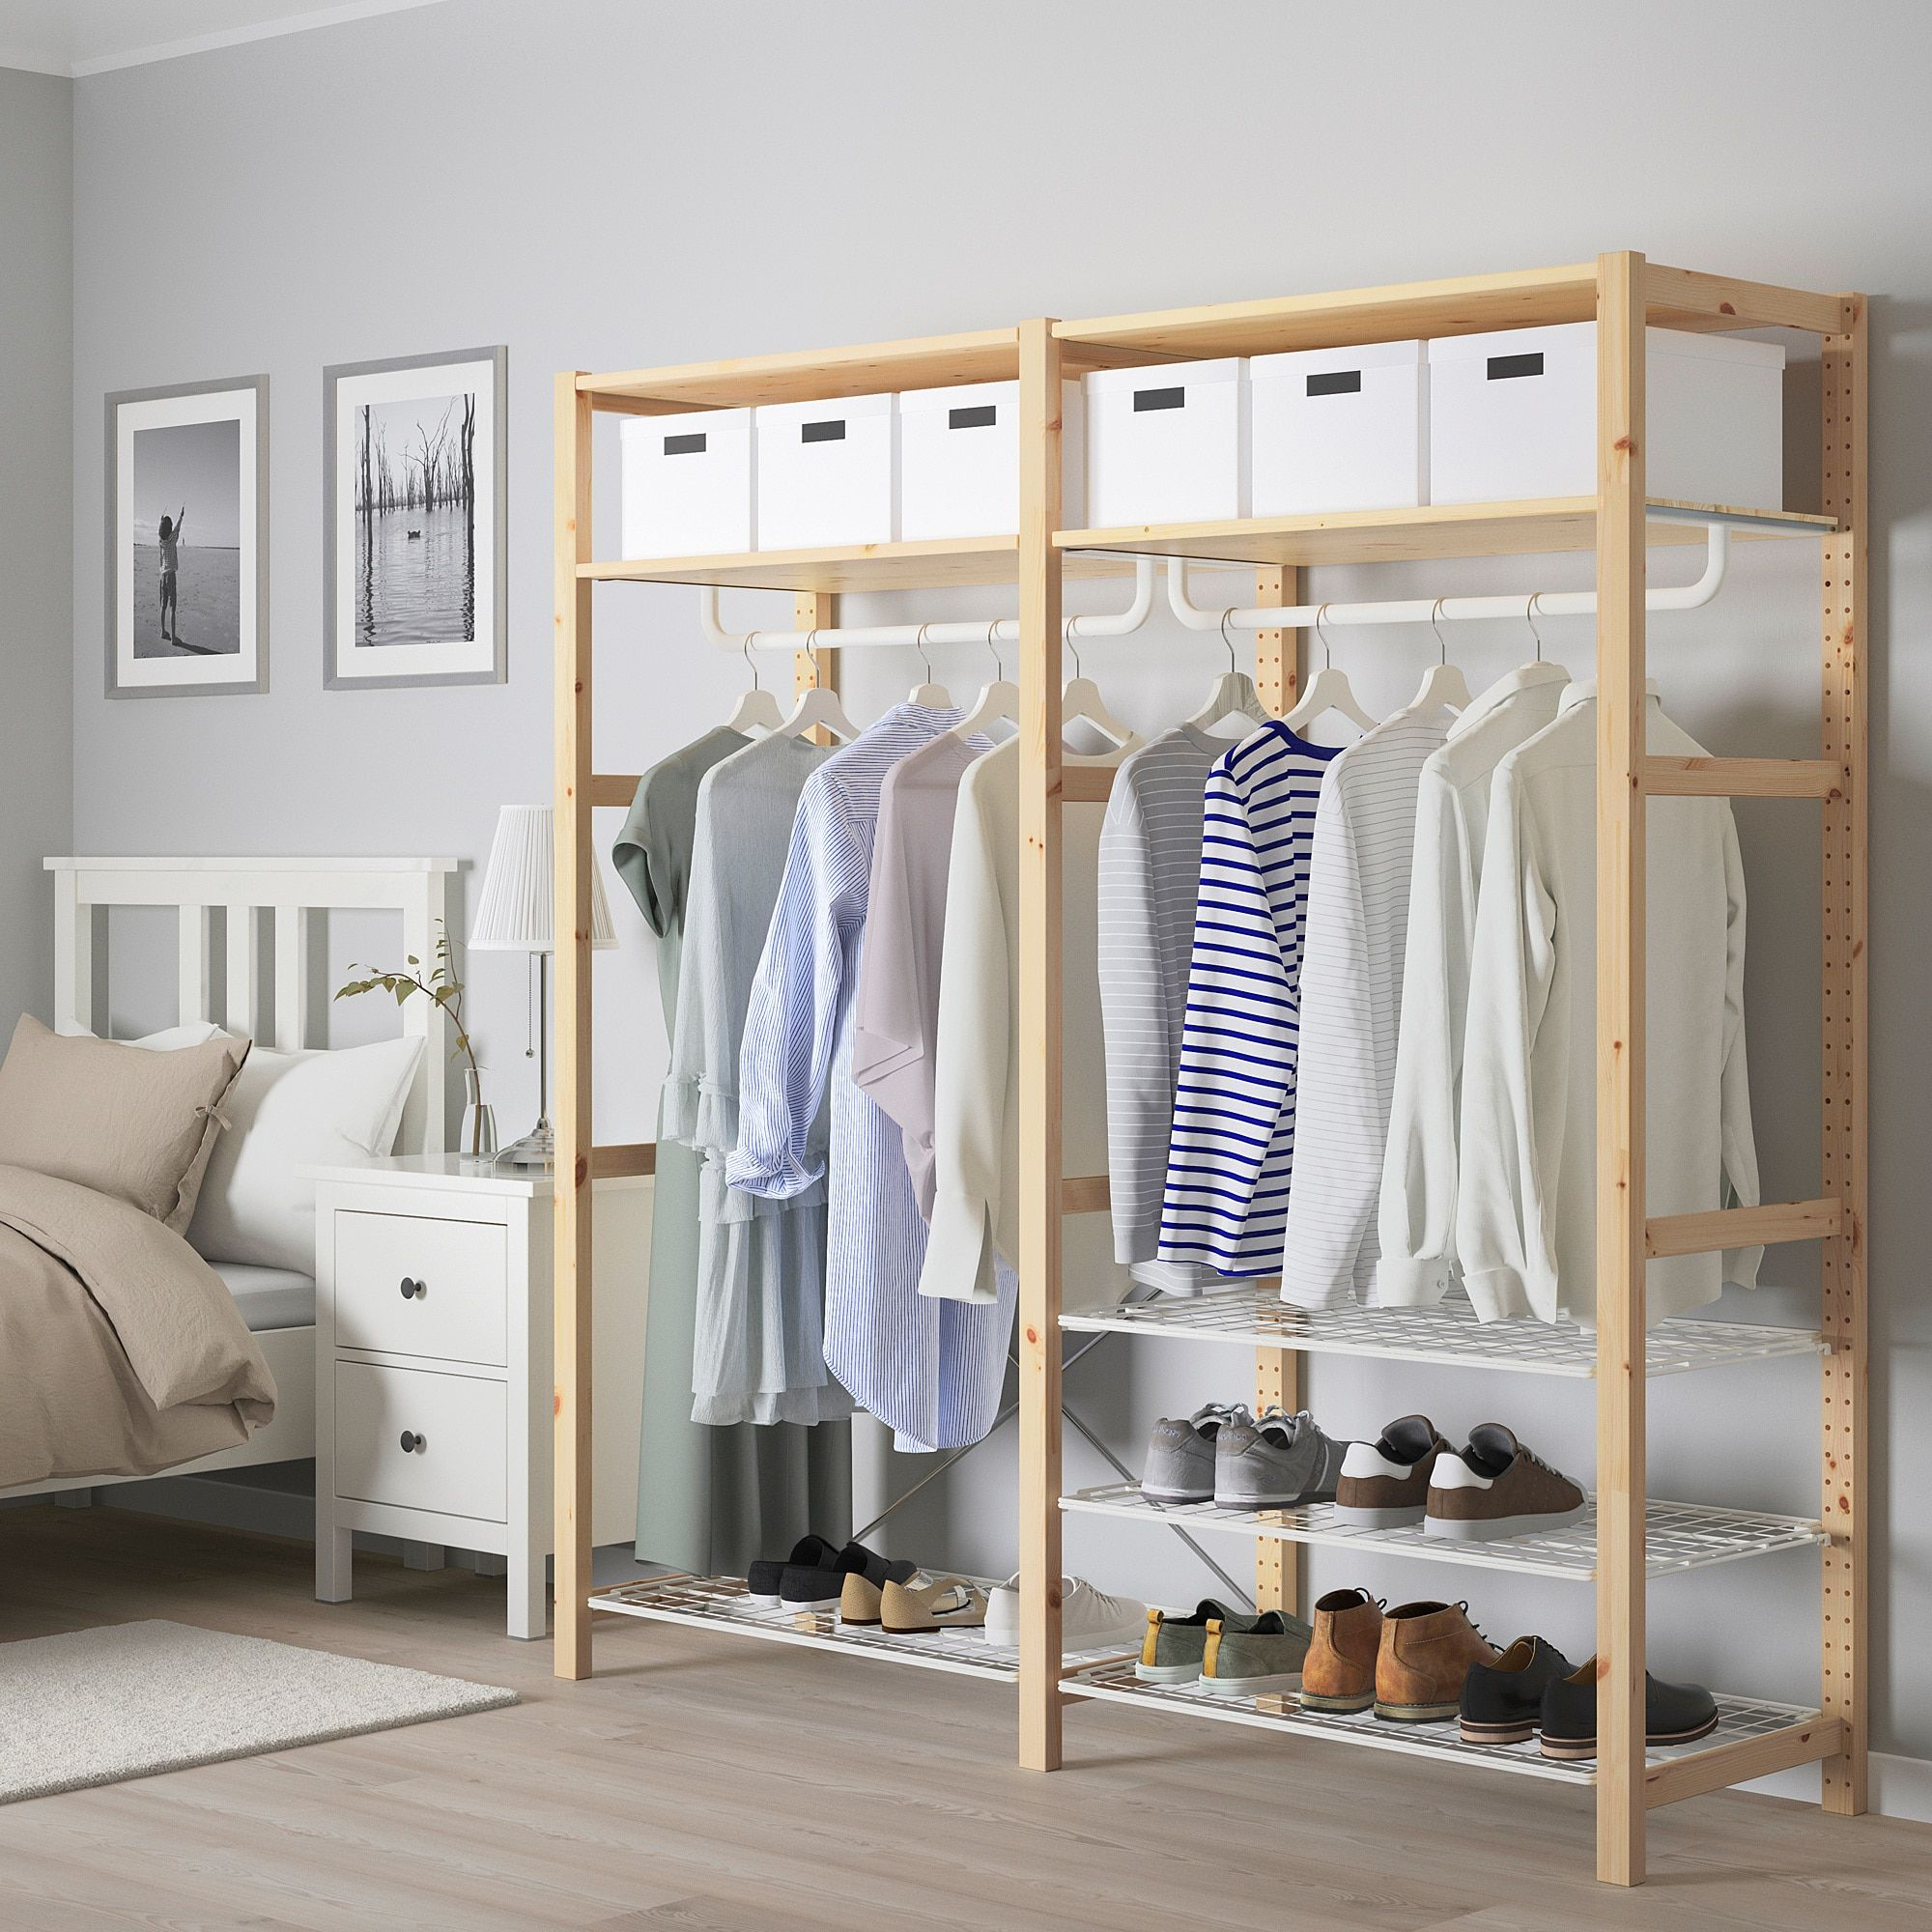 Ikea Ivar Shelving Unit With Shelves Rails Pine Untreated Solid Wood Is A Durable Natural Material Which Clothes Rail Clothes Rail Ikea Ikea Shelving Unit